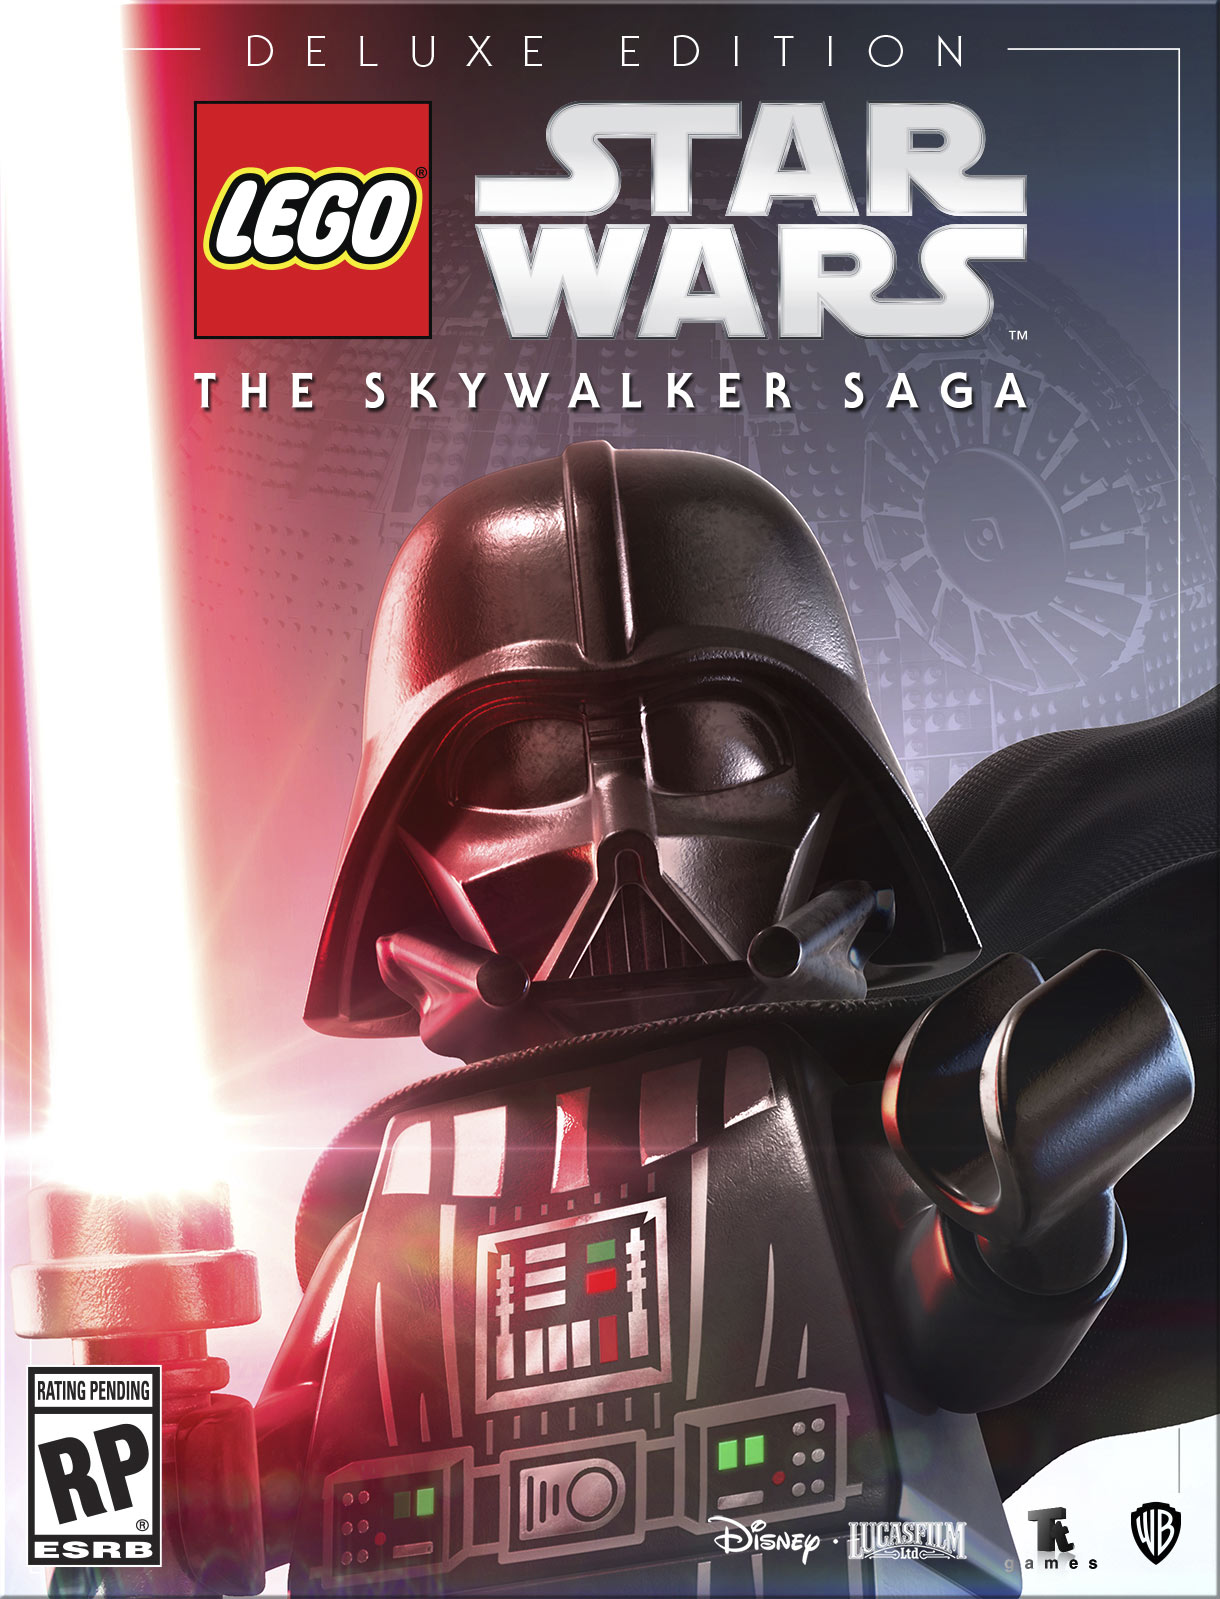 LEGO Star Wars: The Skywalker Saga Deluxe Edition box art with helmet